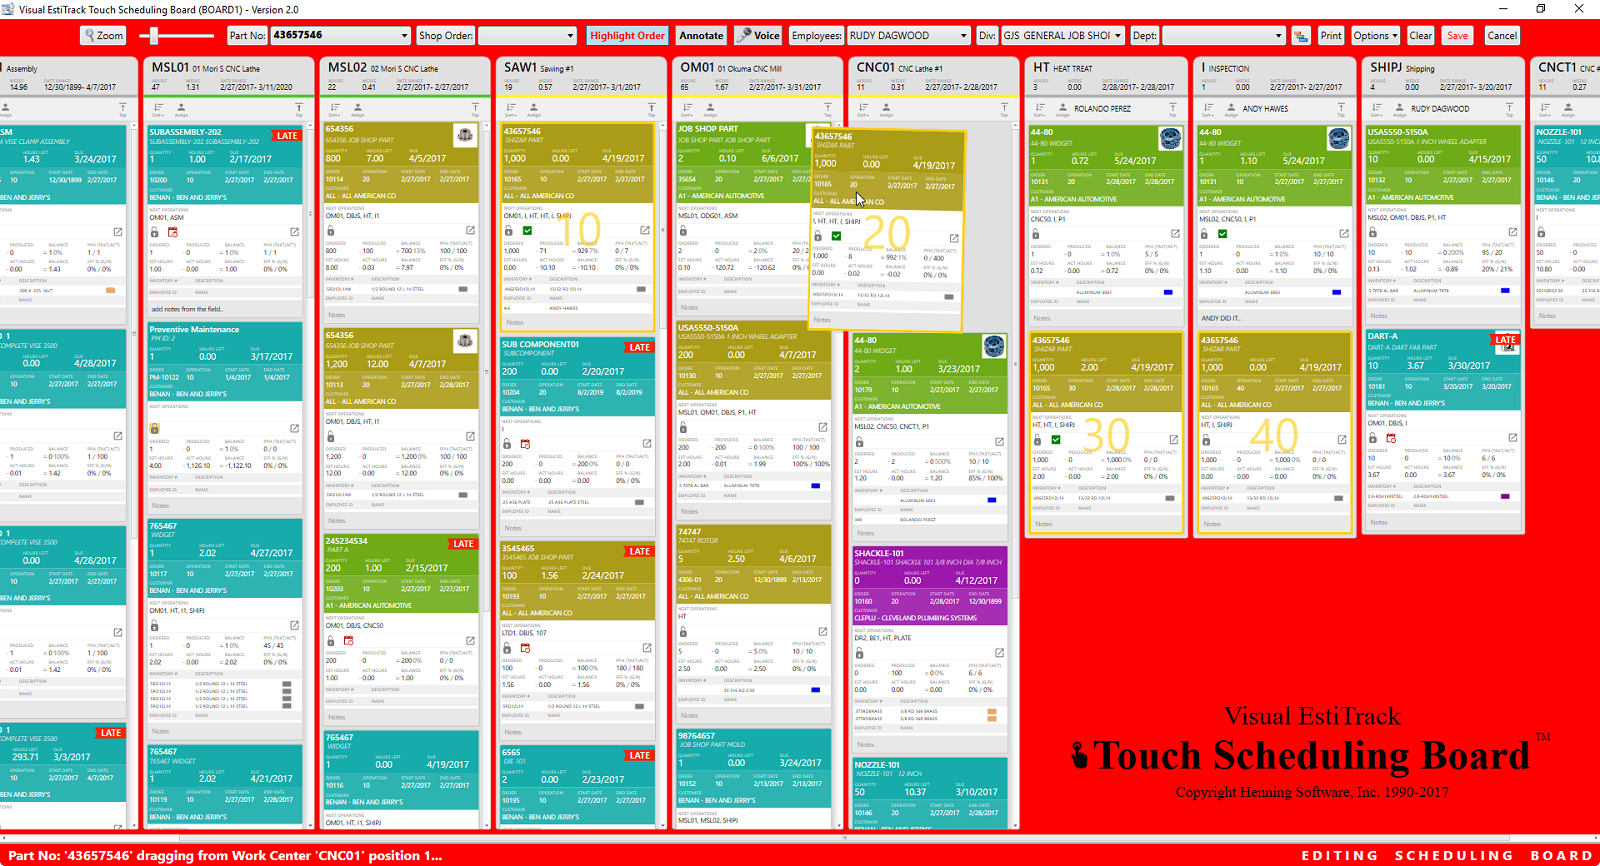 Touch scheduling board